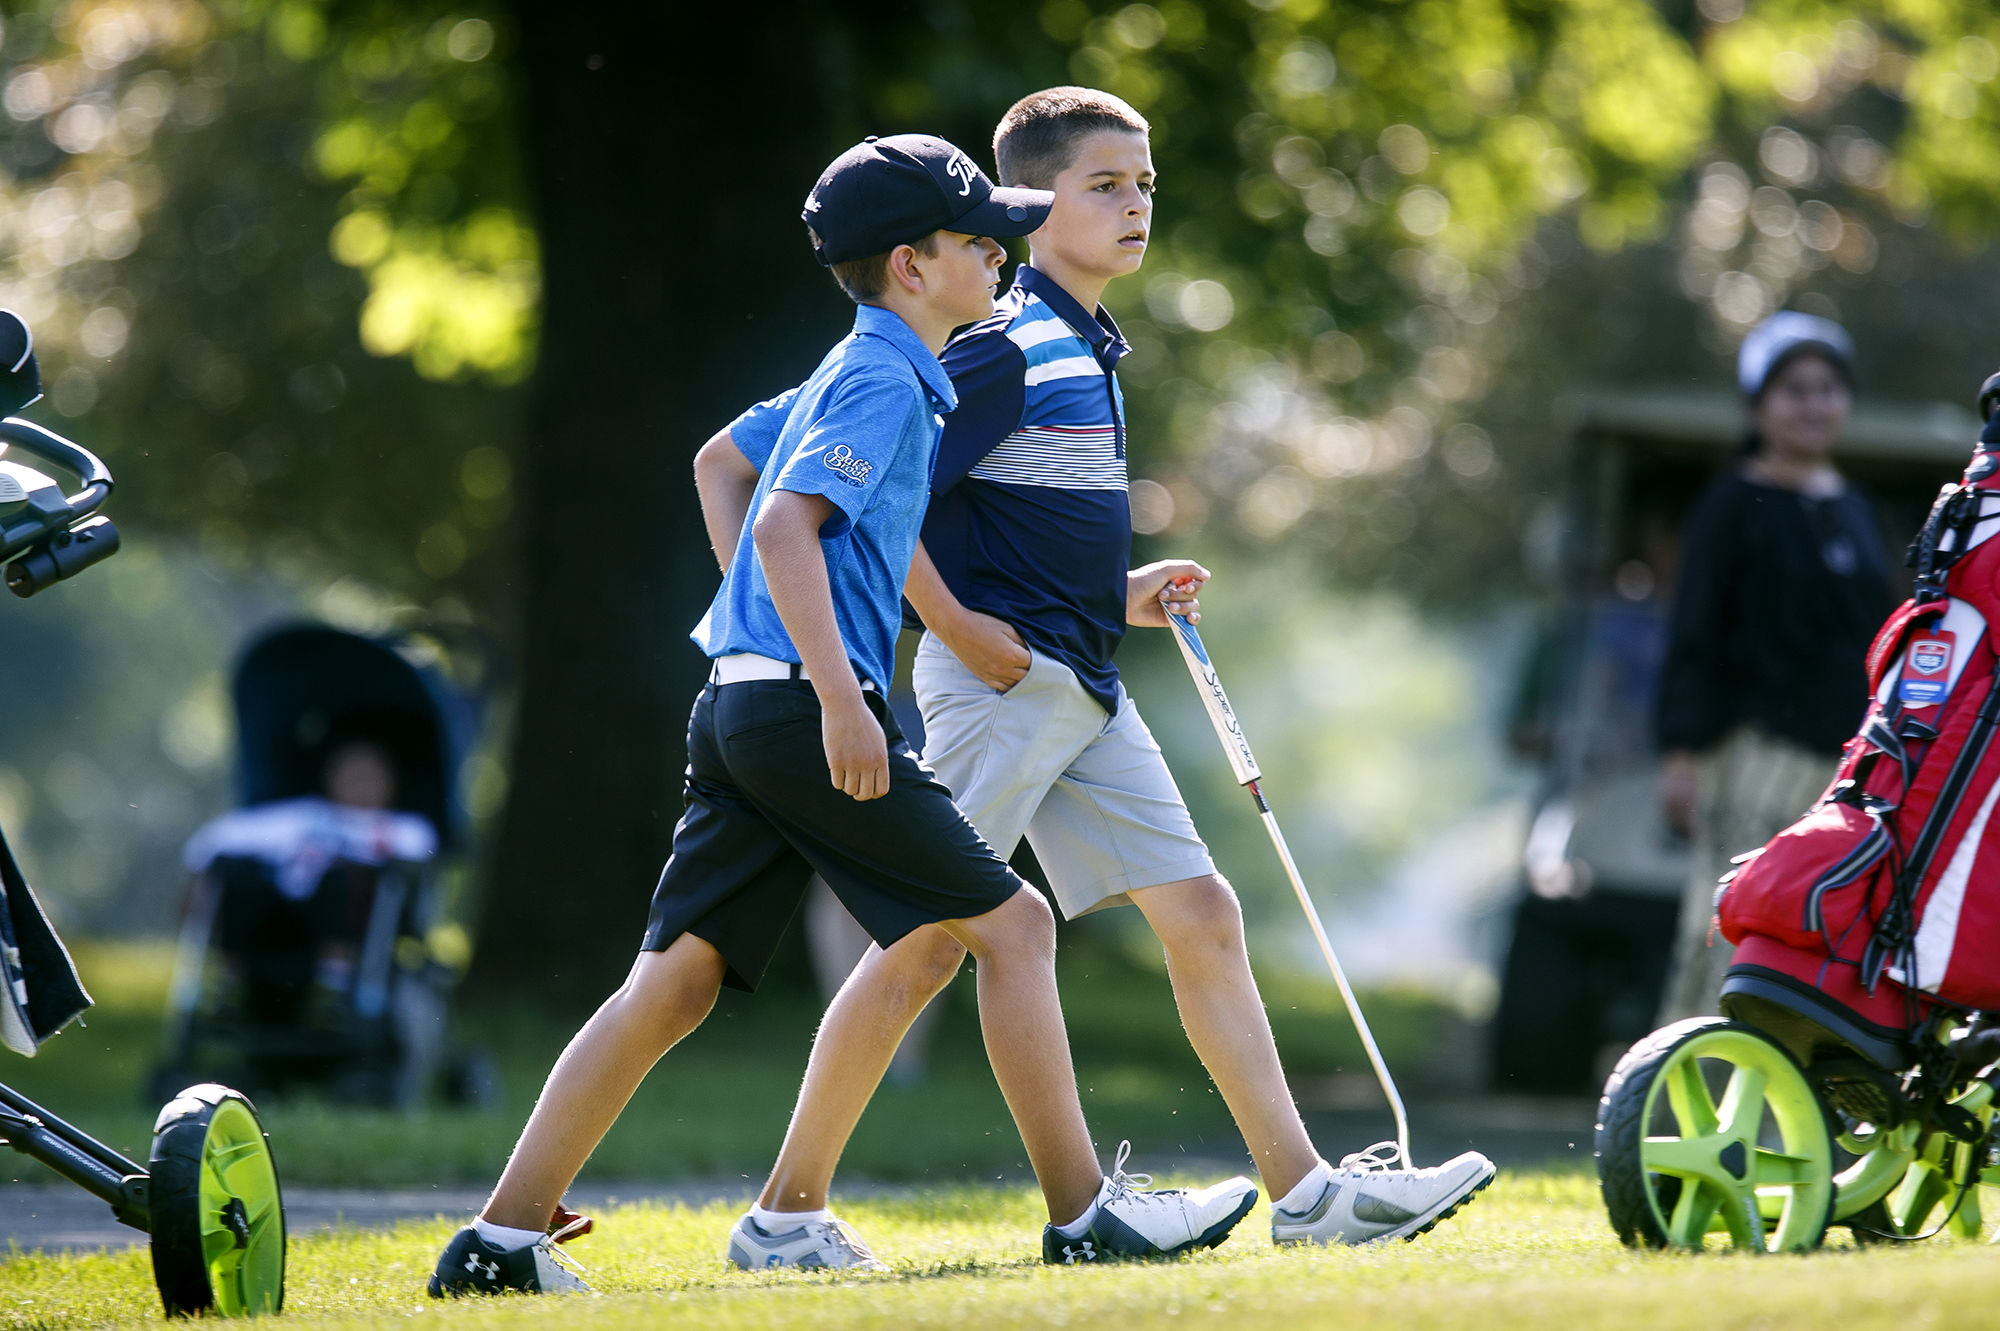 Ryan, left, and Drew Suhre of Edwardsville approach the No. 6 green in the boys 11-13 championship flight of the Drysdale Junior Golf Tournament Tuesday, July 10, 2018 at Bergen Golf Course in Springfield, Ill. [Rich Saal/The State Journal-Register]